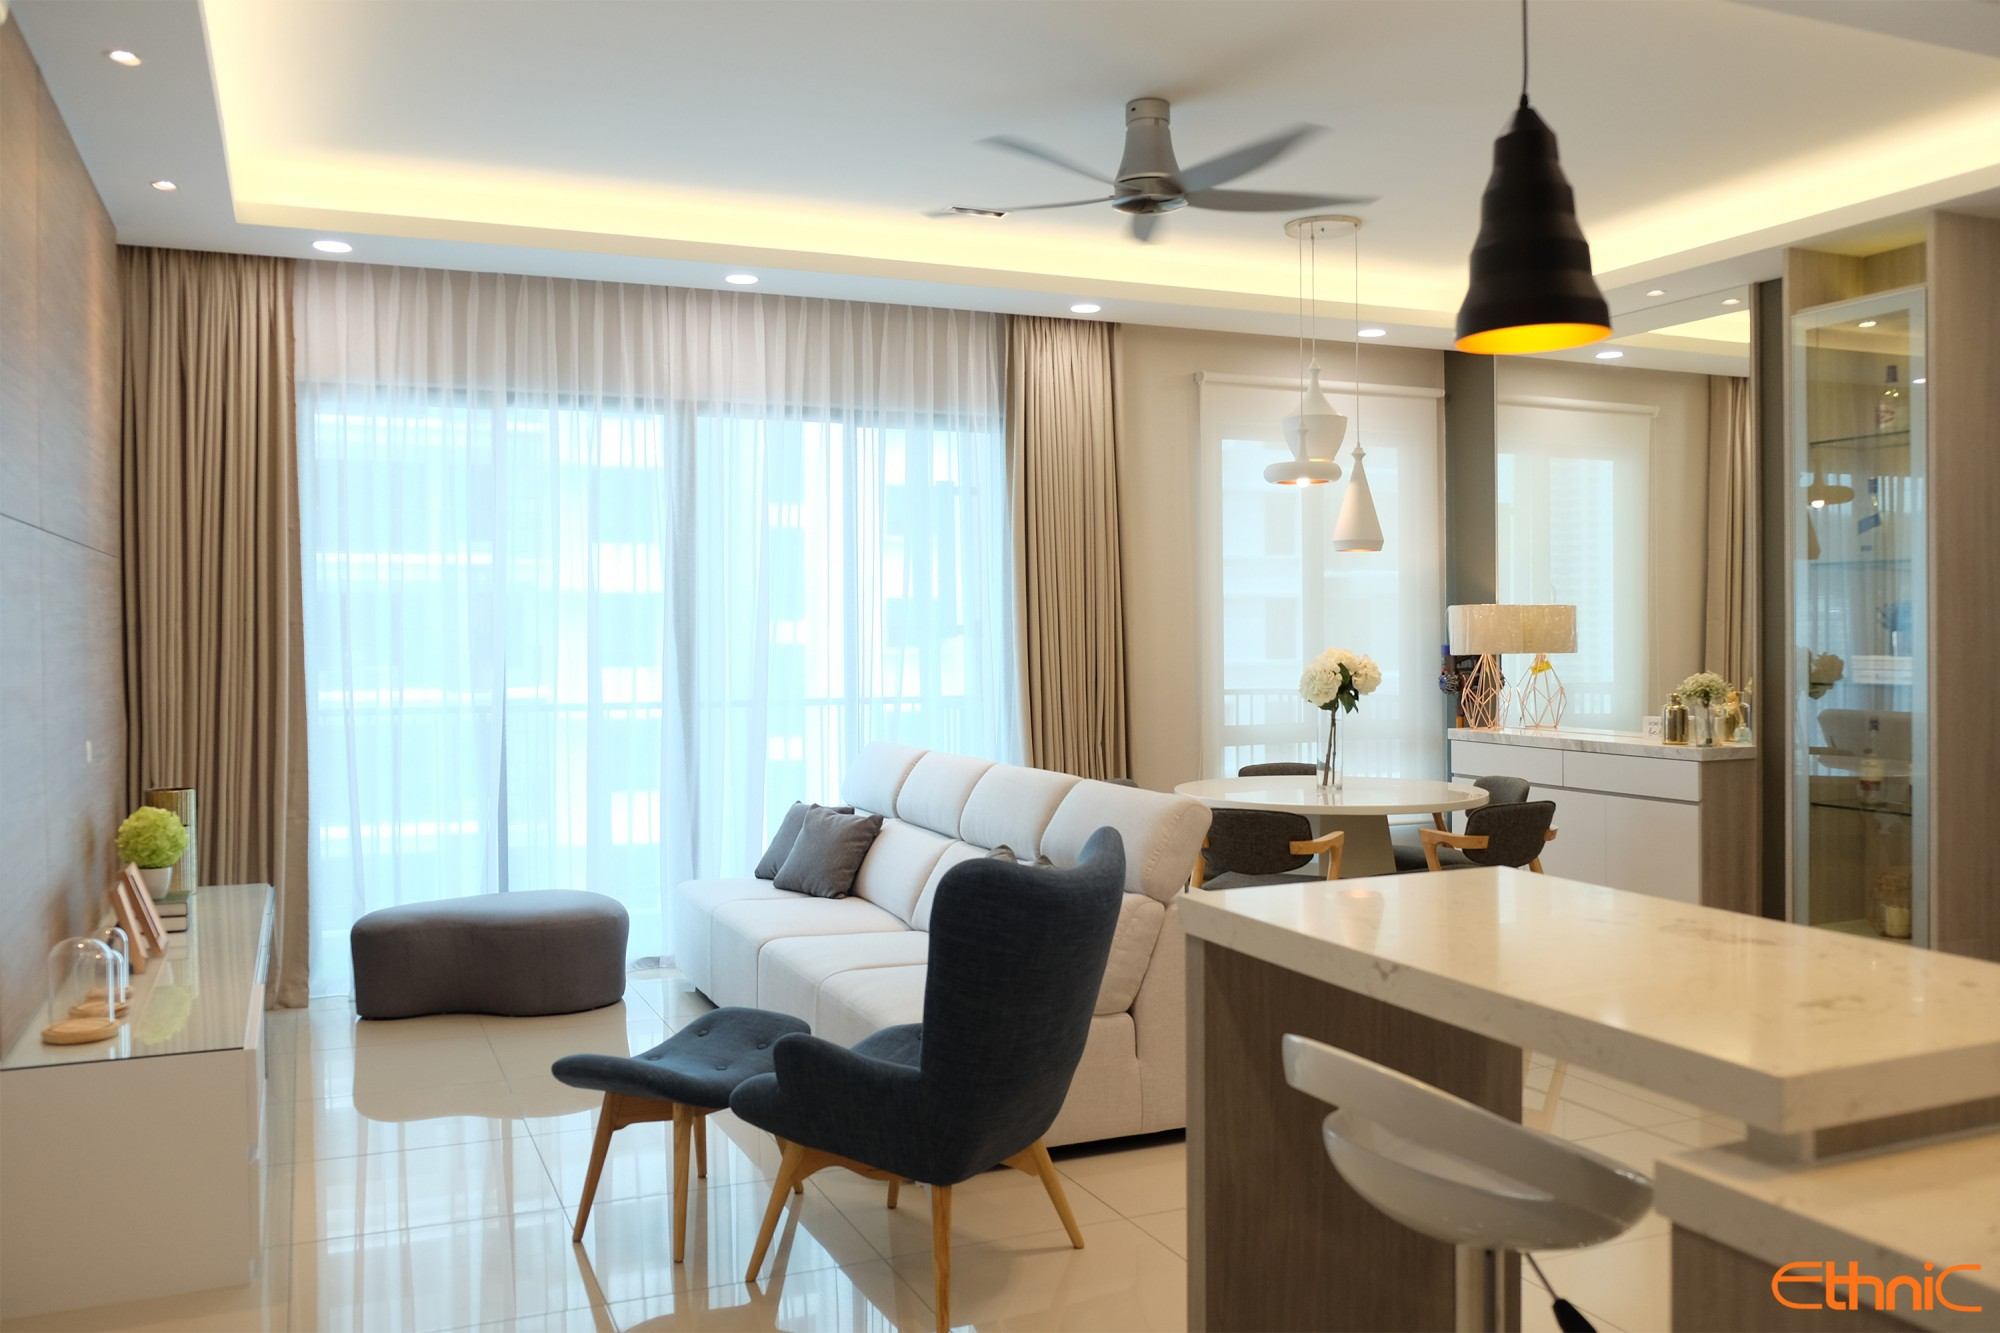 Penang Tree Sparina Interior Design Renovation